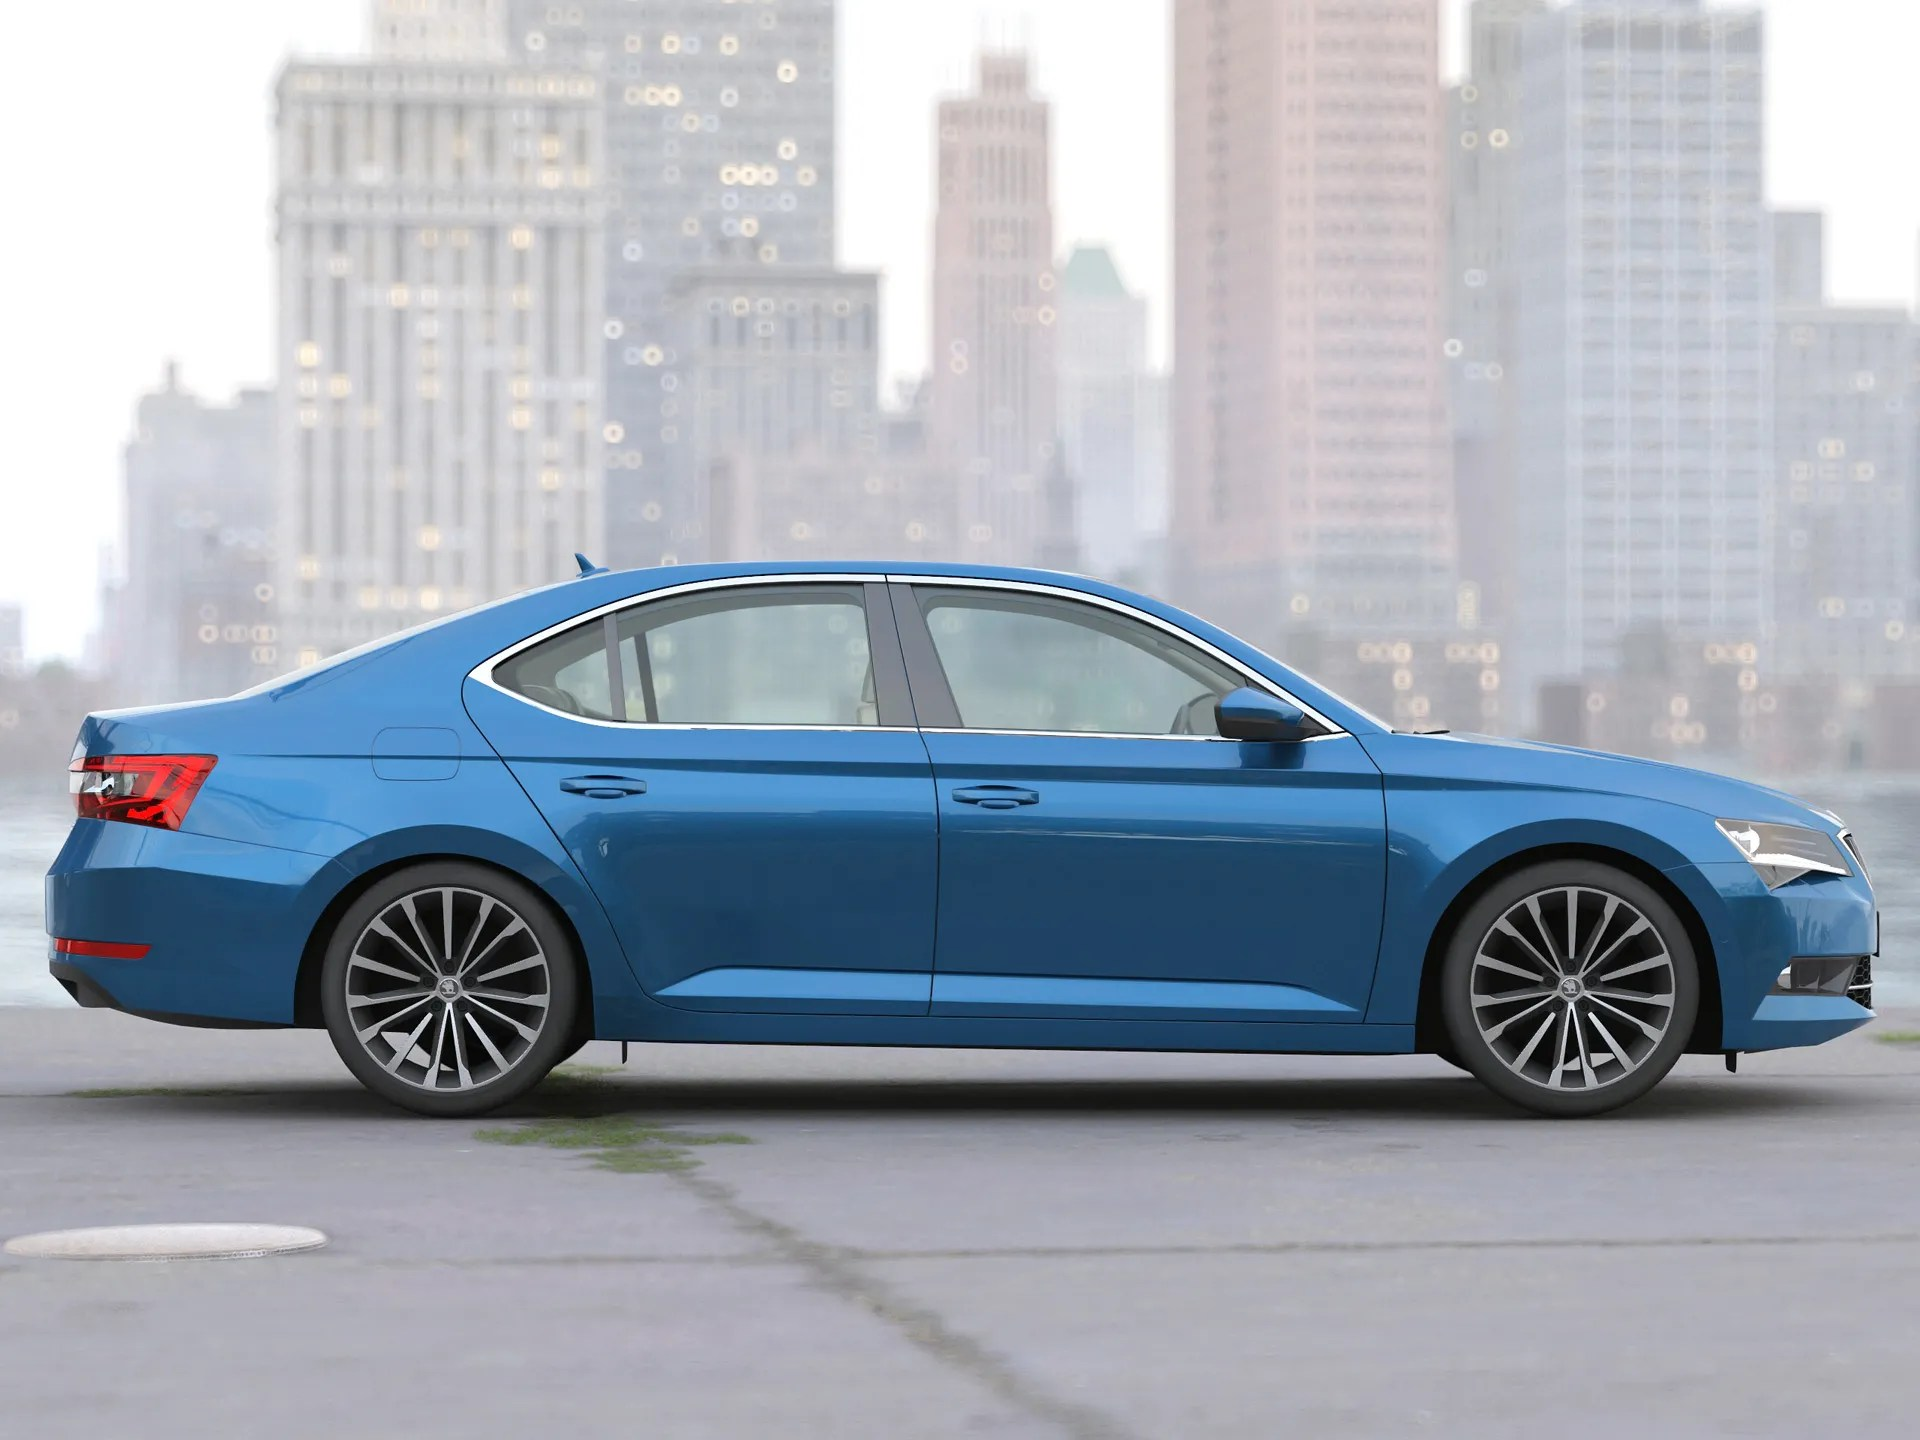 hight resolution of skoda superb 2018 3d model 3ds max fbx c4d obj 269194